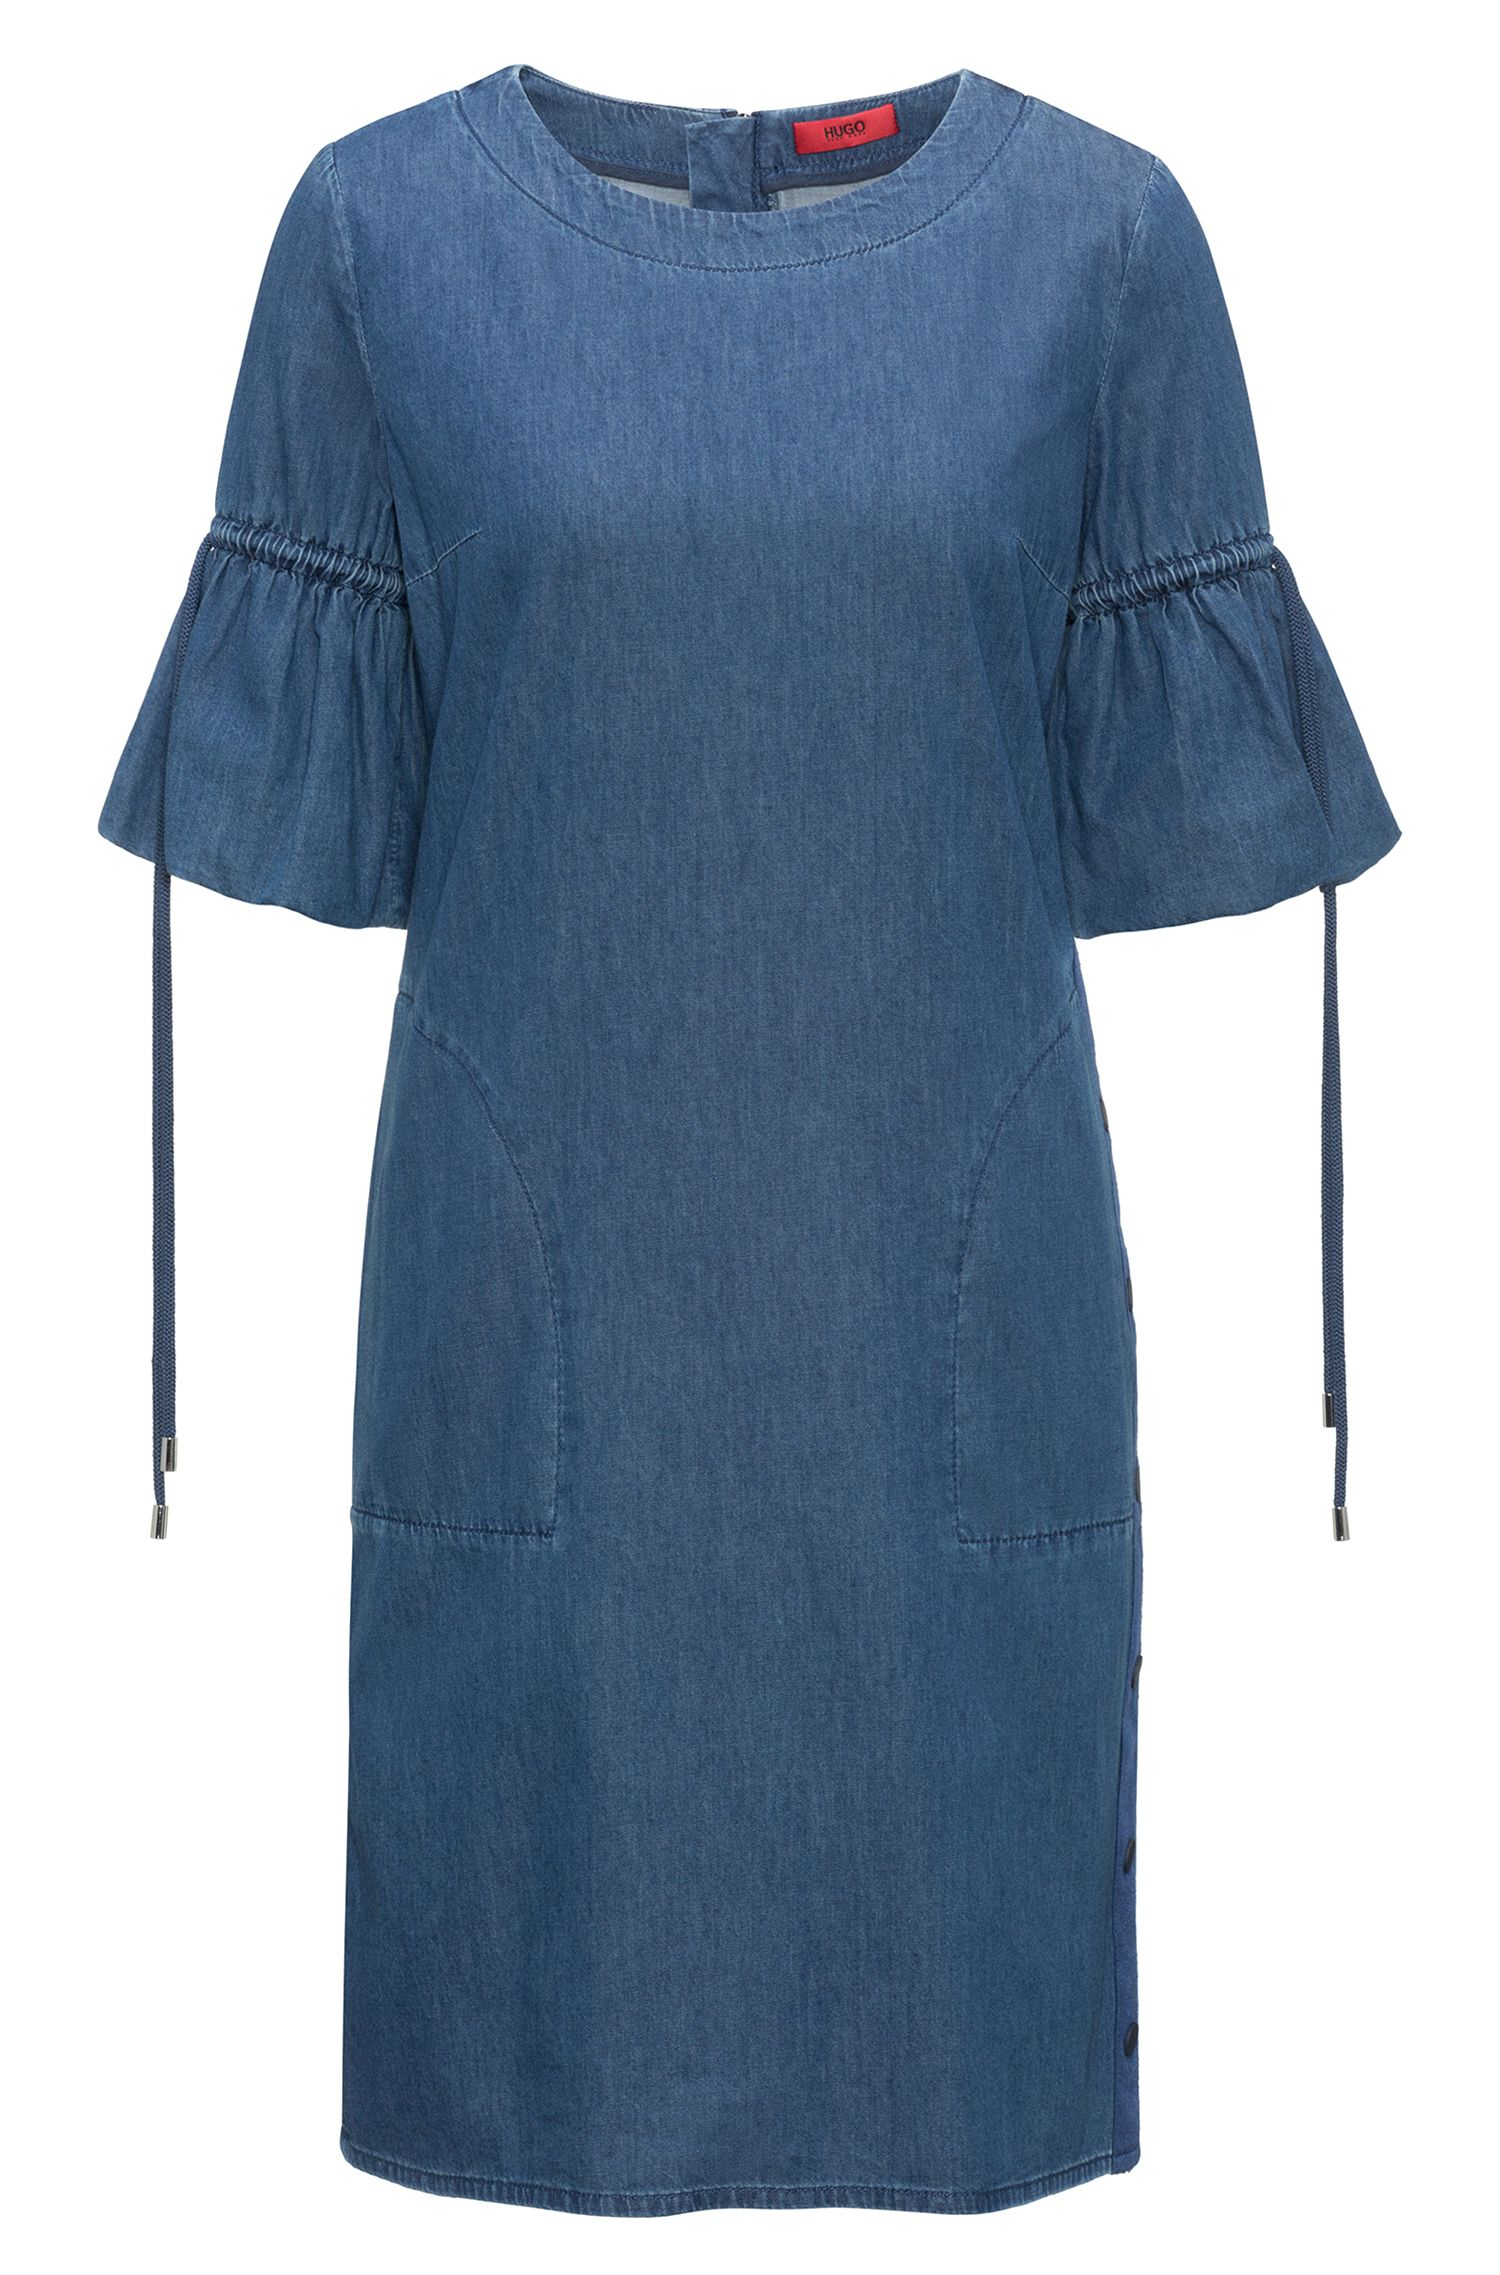 Kleid aus Denim in Washed-Optik mit gerafften Ärmeln